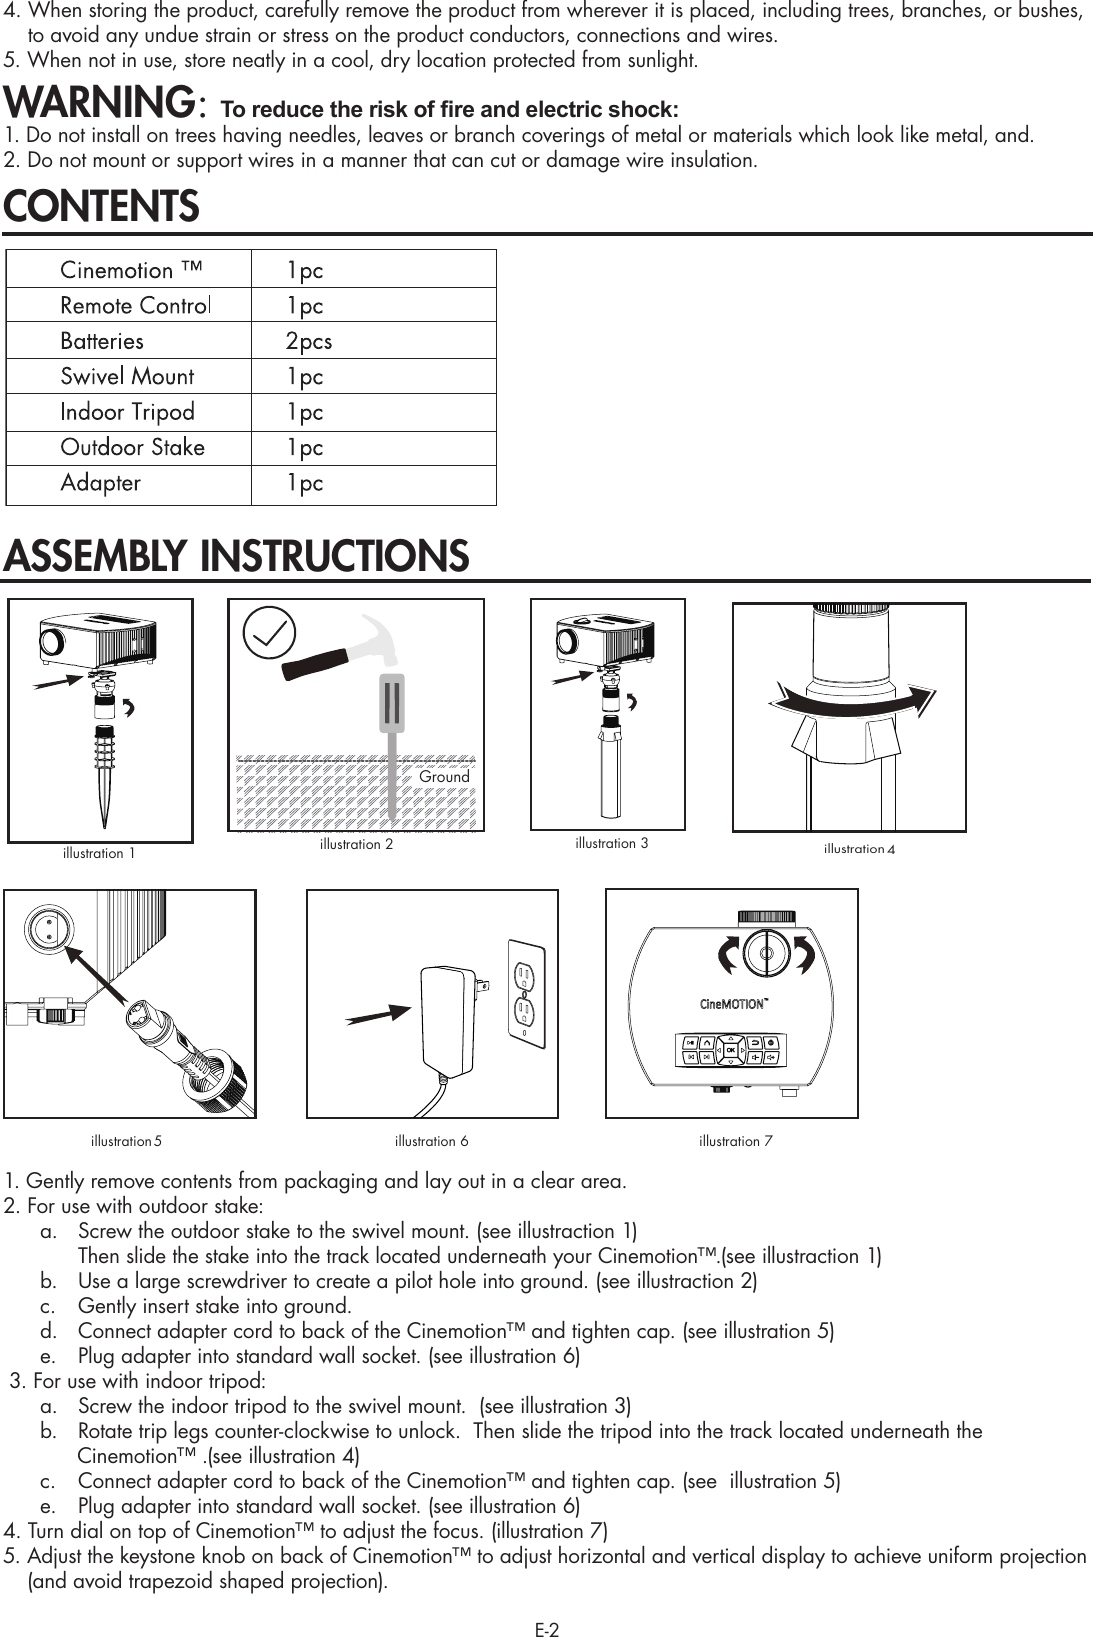 Small Branch Aluminum Wiring Manual Guide